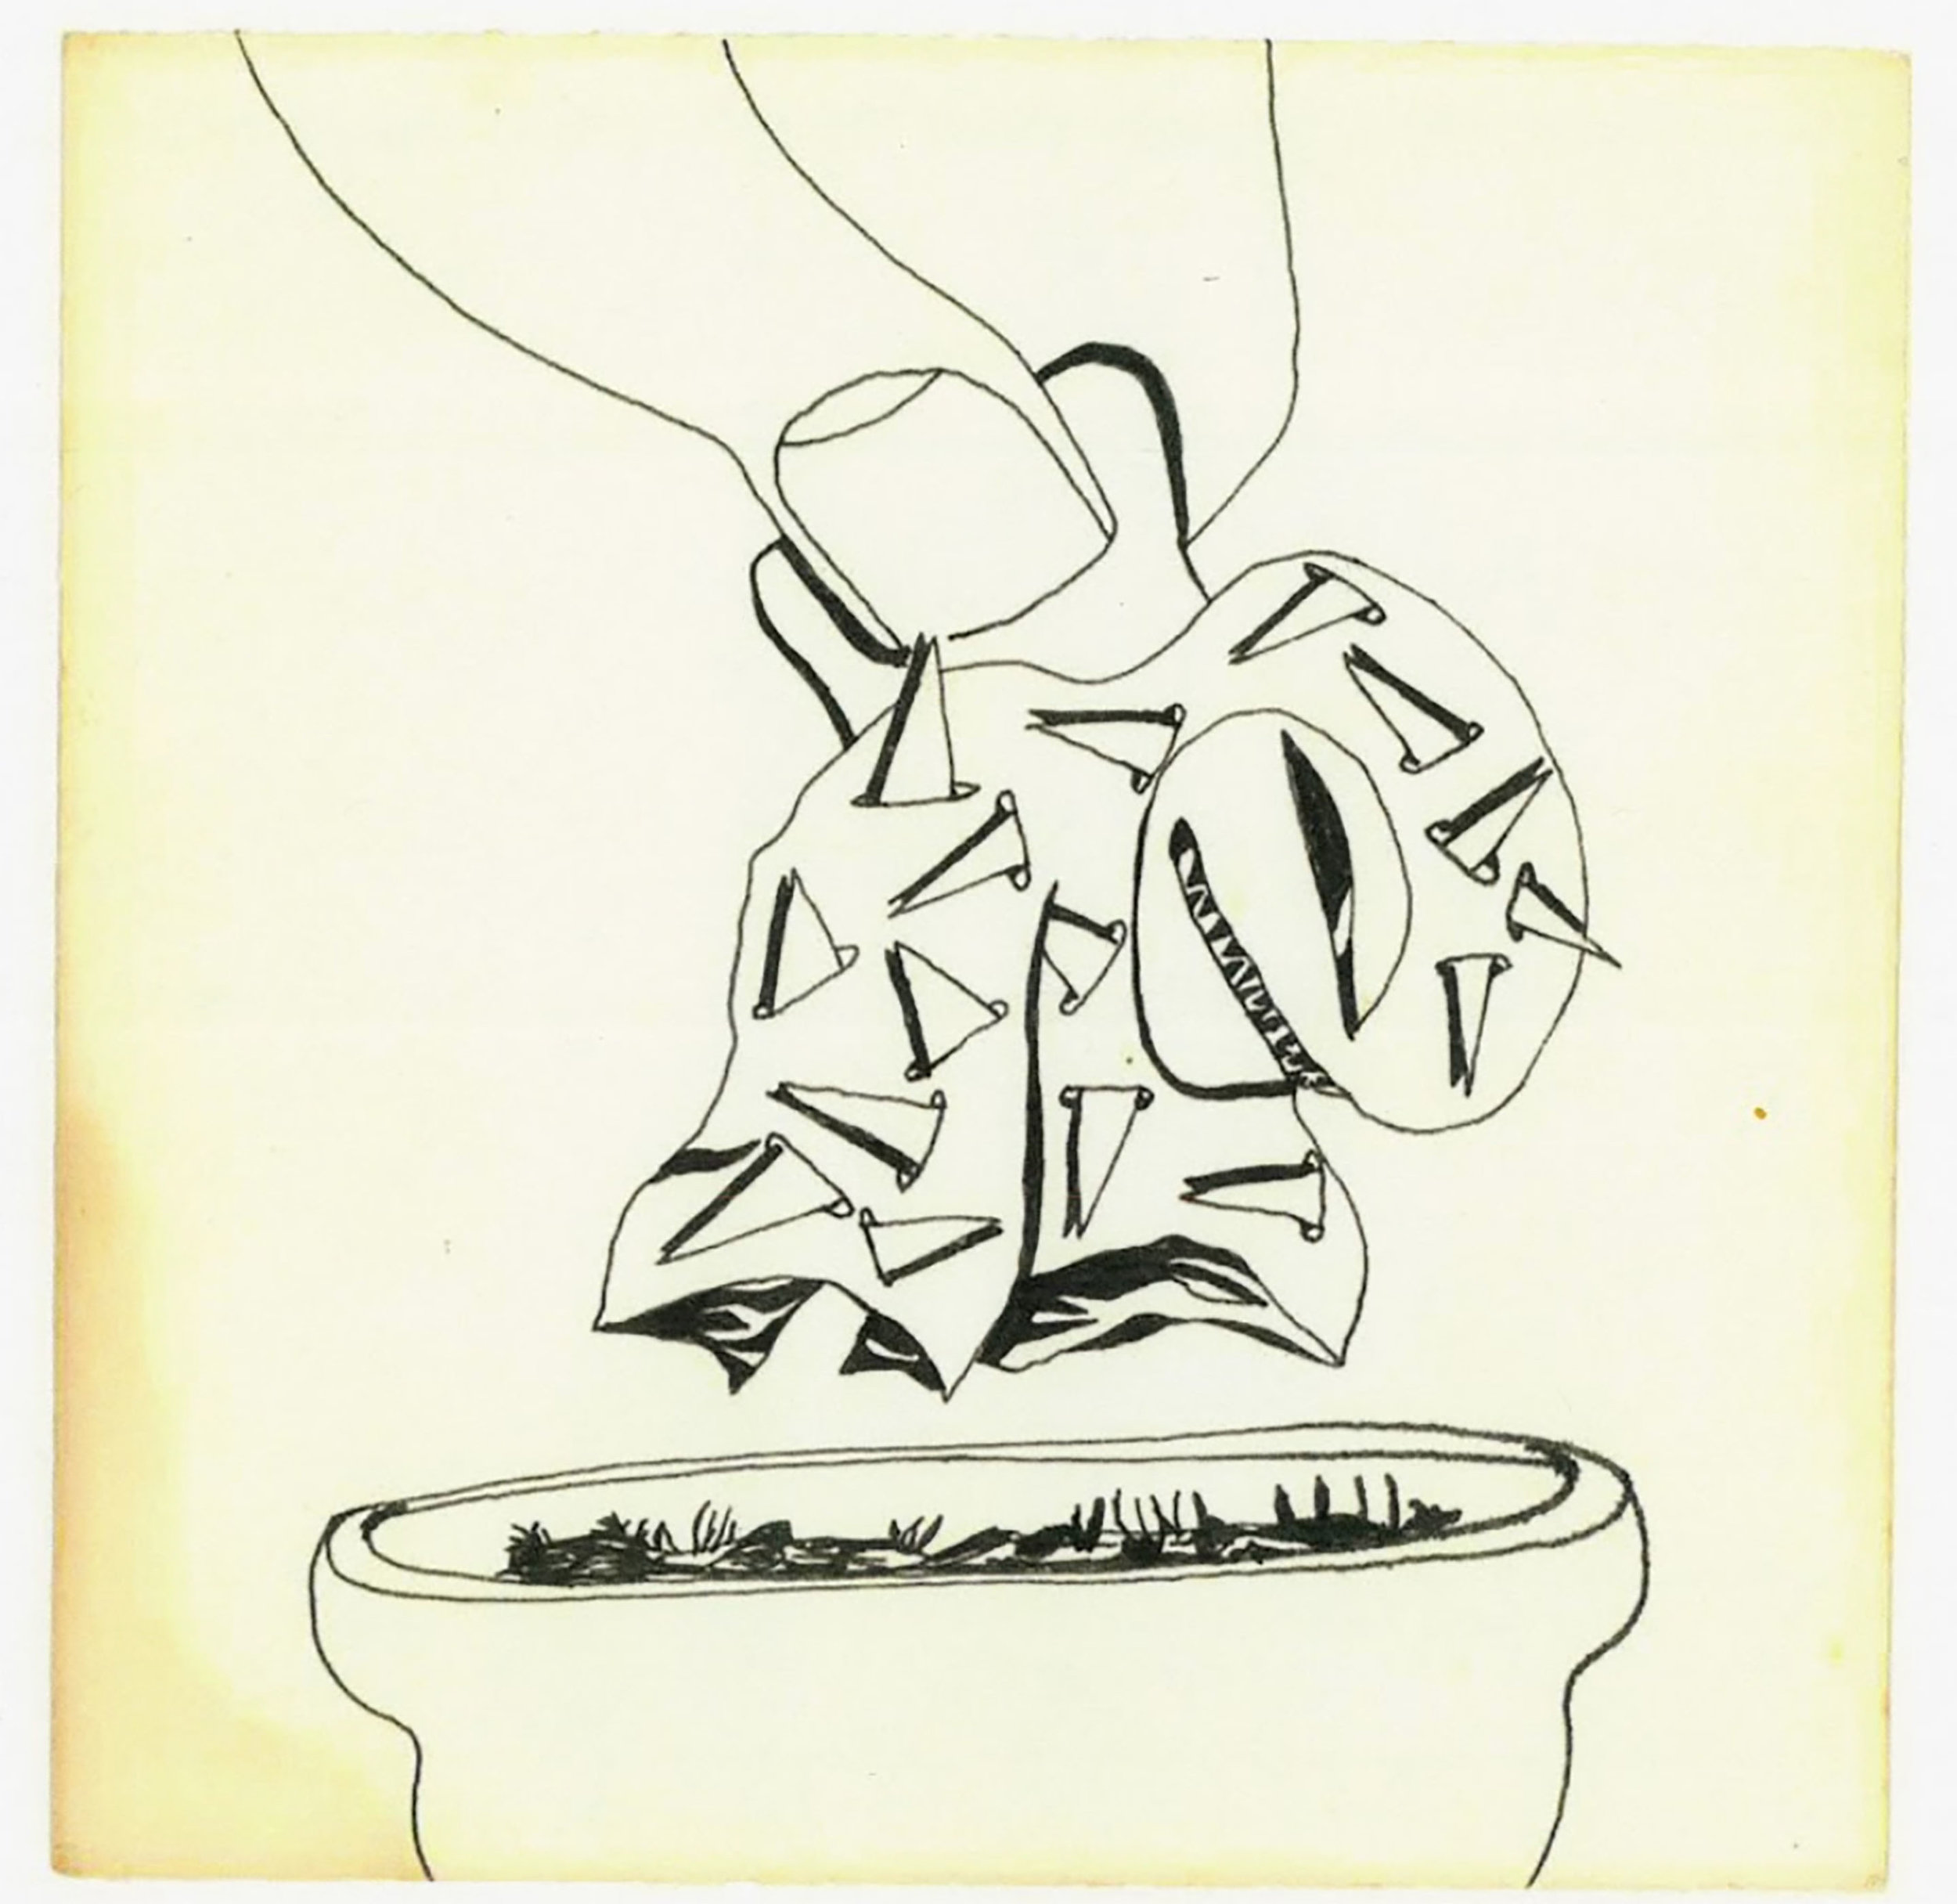 """Philip Rich, Untitled #4, ink on paper, 6"""" x 6,"""" 1965-1967"""